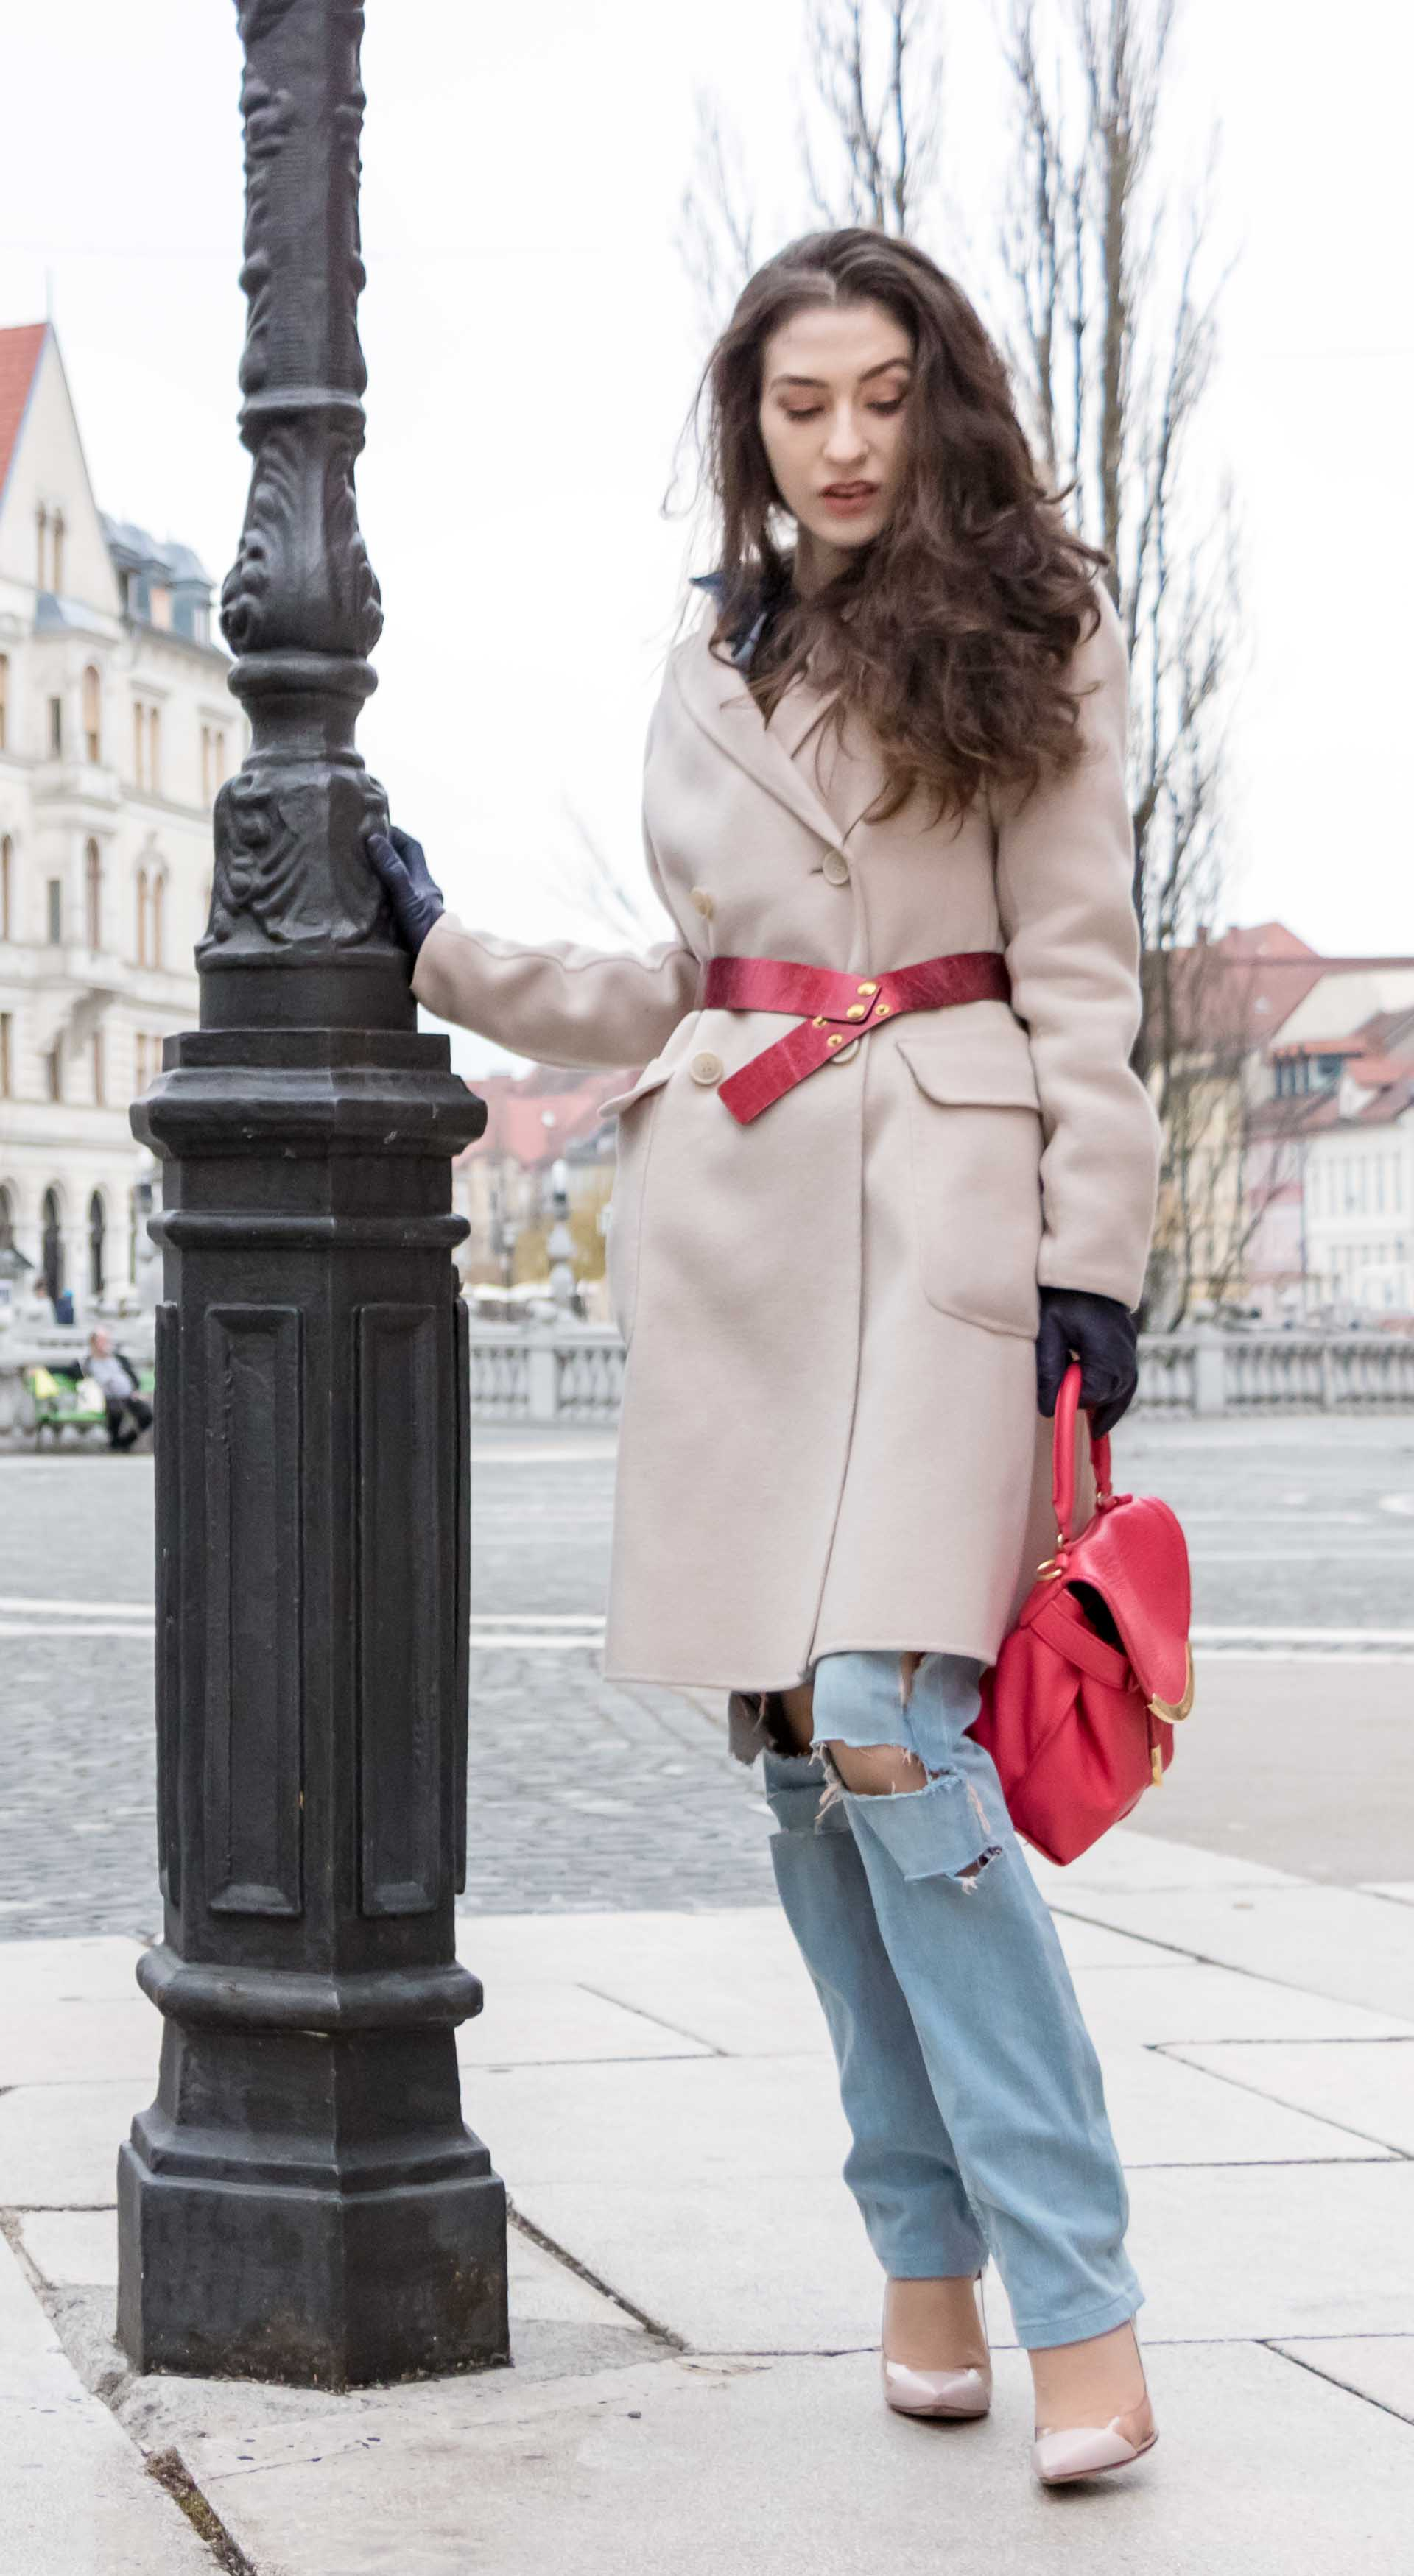 Fashion Blogger Veronika Lipar of Brunette from Wall Street wearing distressed blue Levi's jeans, off-white double breasted Weekend Maxmara coat, red dangling belt, blush Gianvito Rossi plexi pumps, See by Chloe pink top handle bag, blue leather gloves leaning on street lamp in Ljubljana